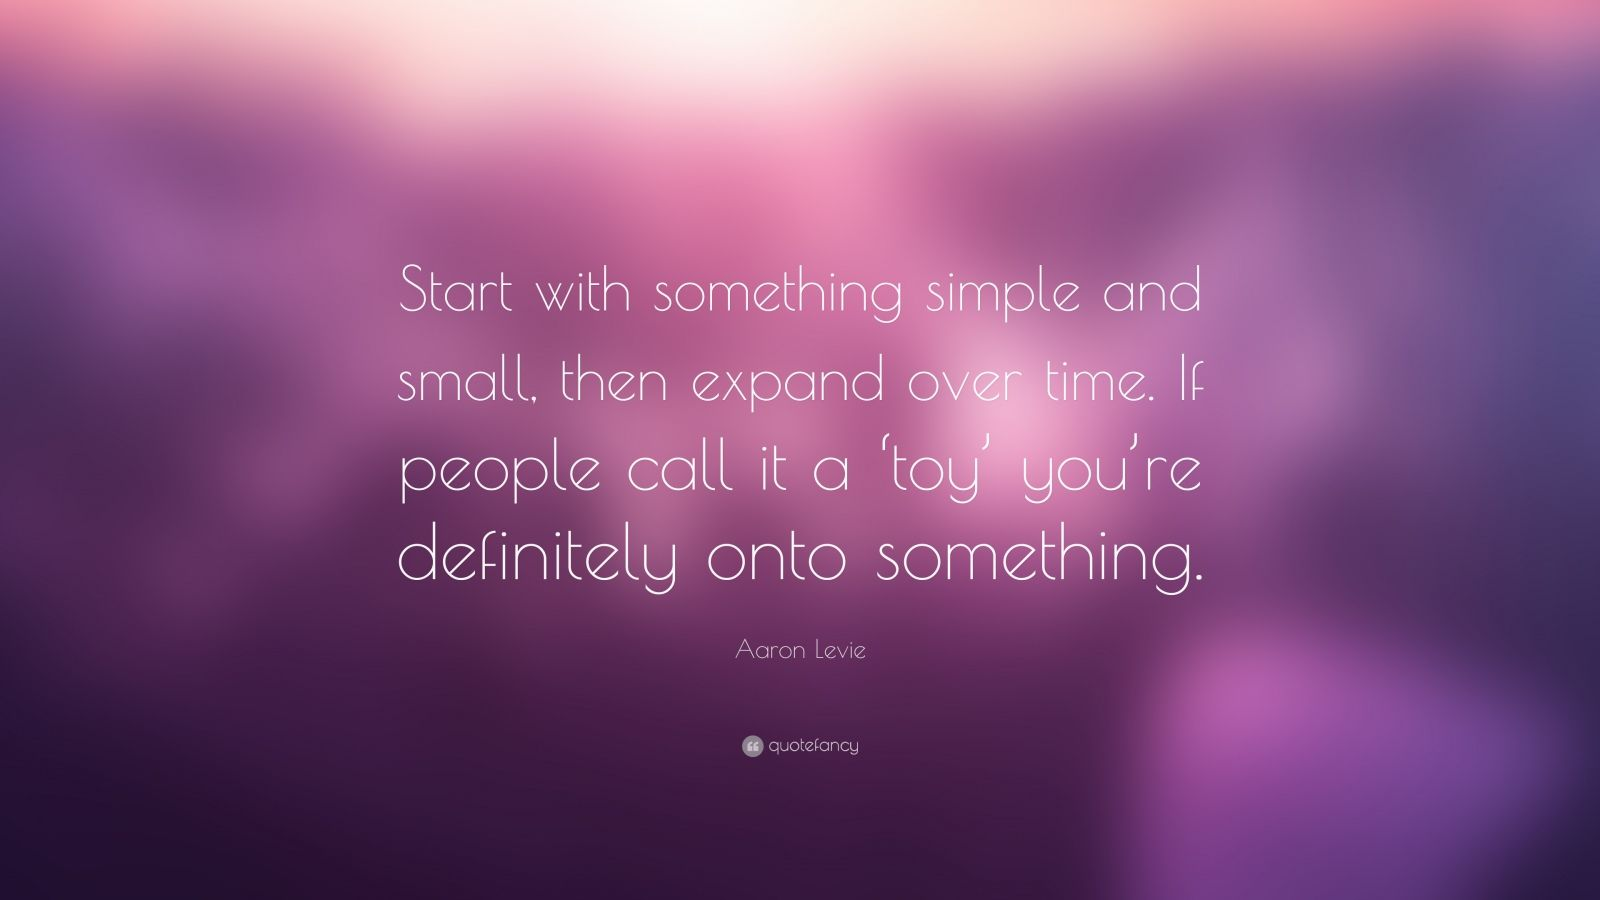 """Aaron Levie Quote: """"Start with something simple and small, then expand over time. If people call it a 'toy' you're definitely onto something."""""""